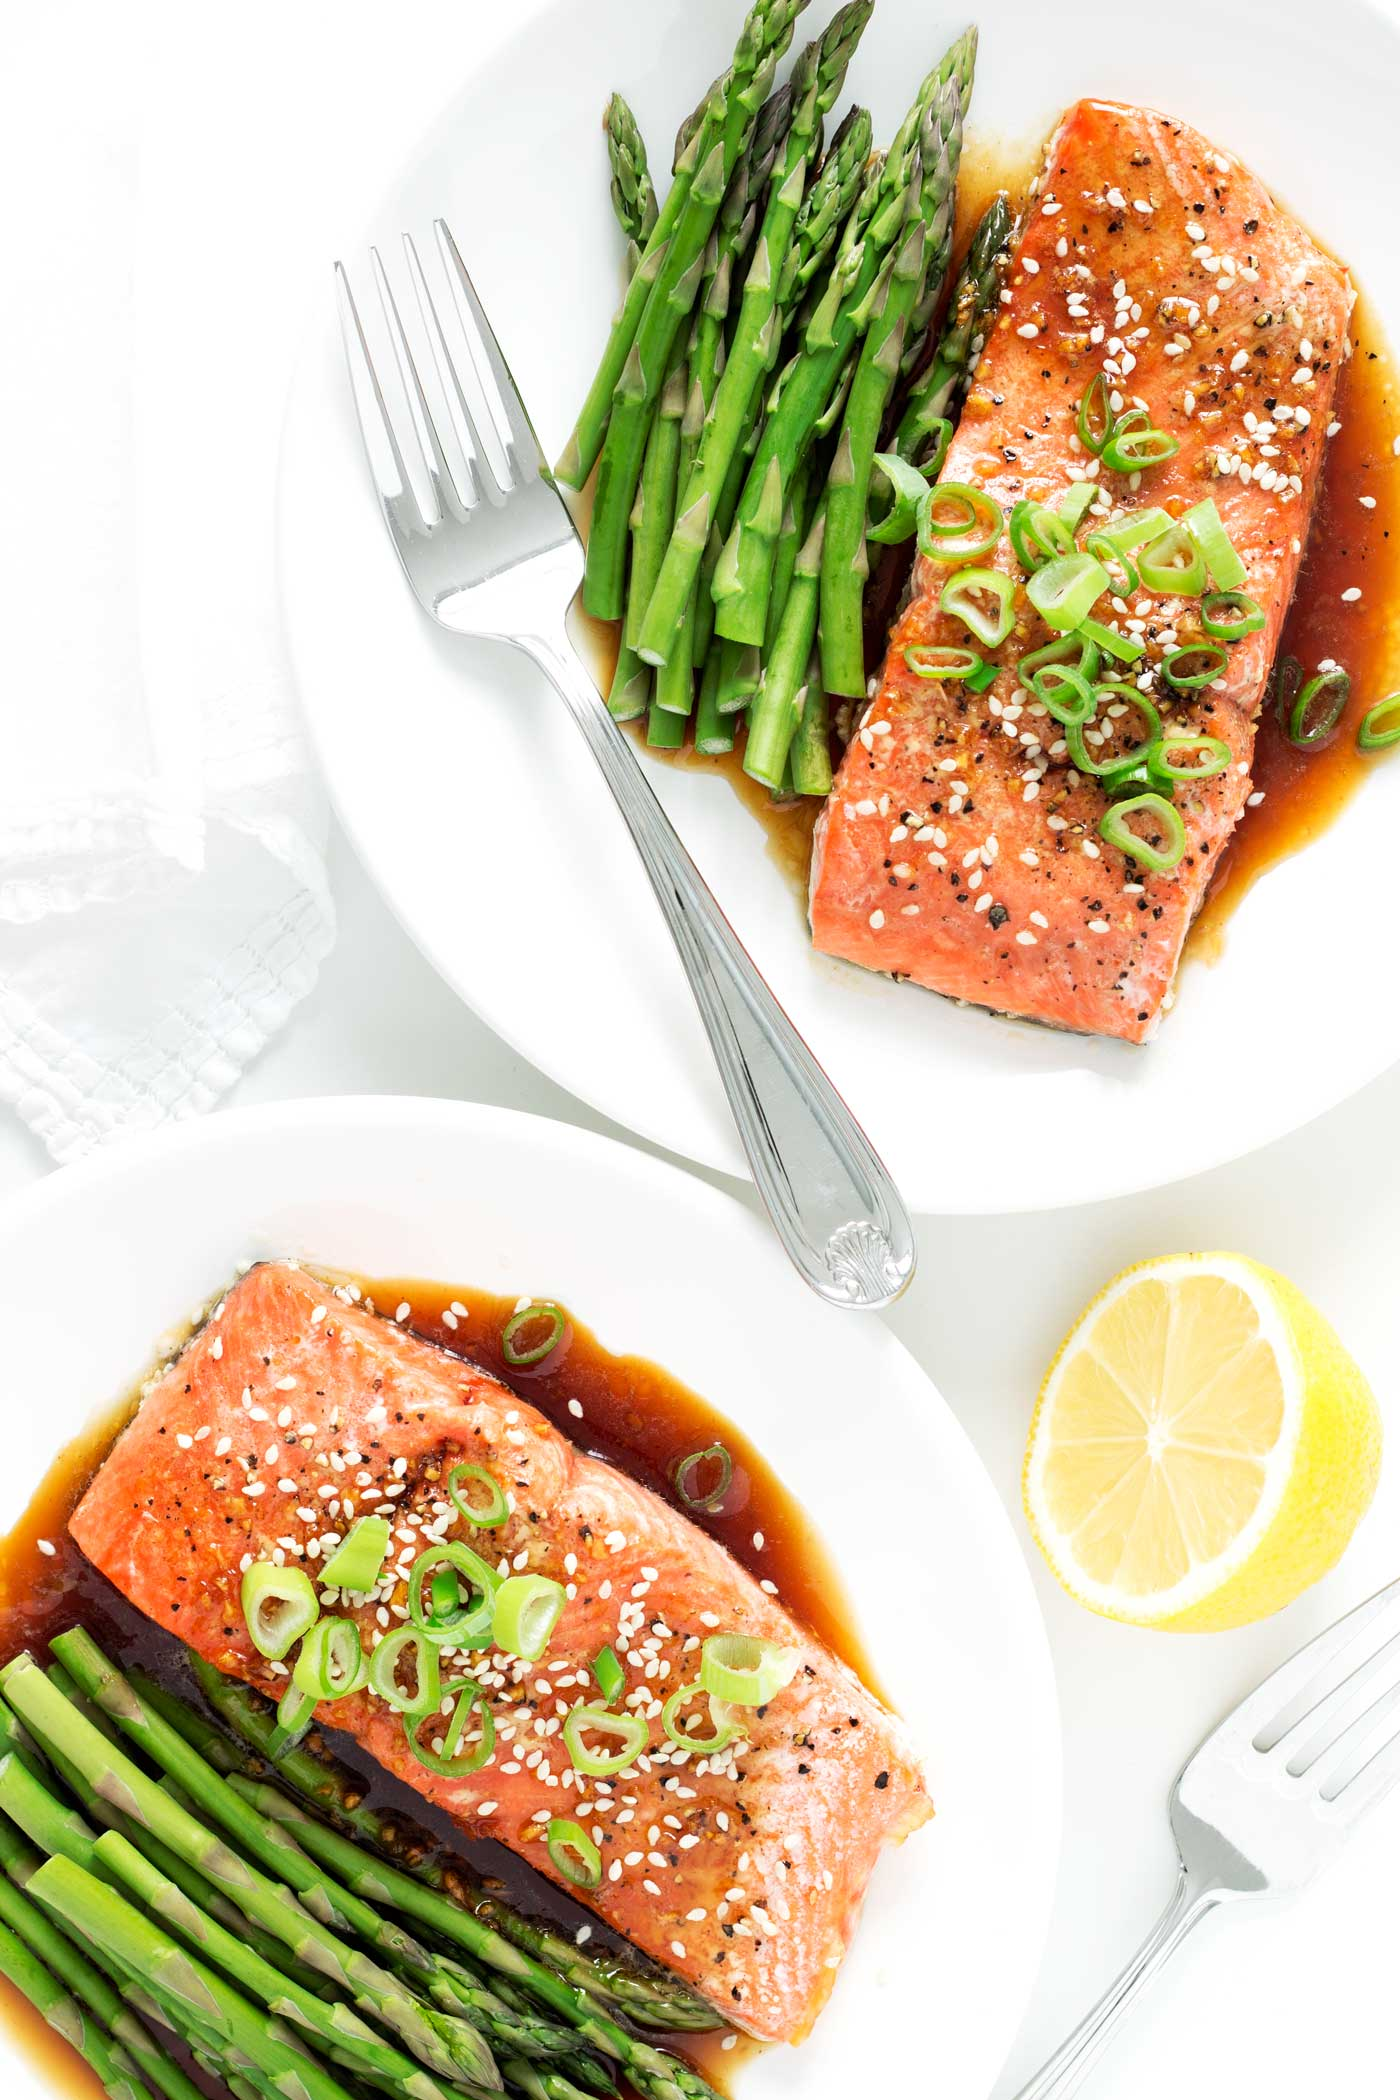 A simple and elegant weeknight meal made in just 25 mins! This honey garlic glazed salmon is full of flavor, gluten free, dairy free, and paleo!